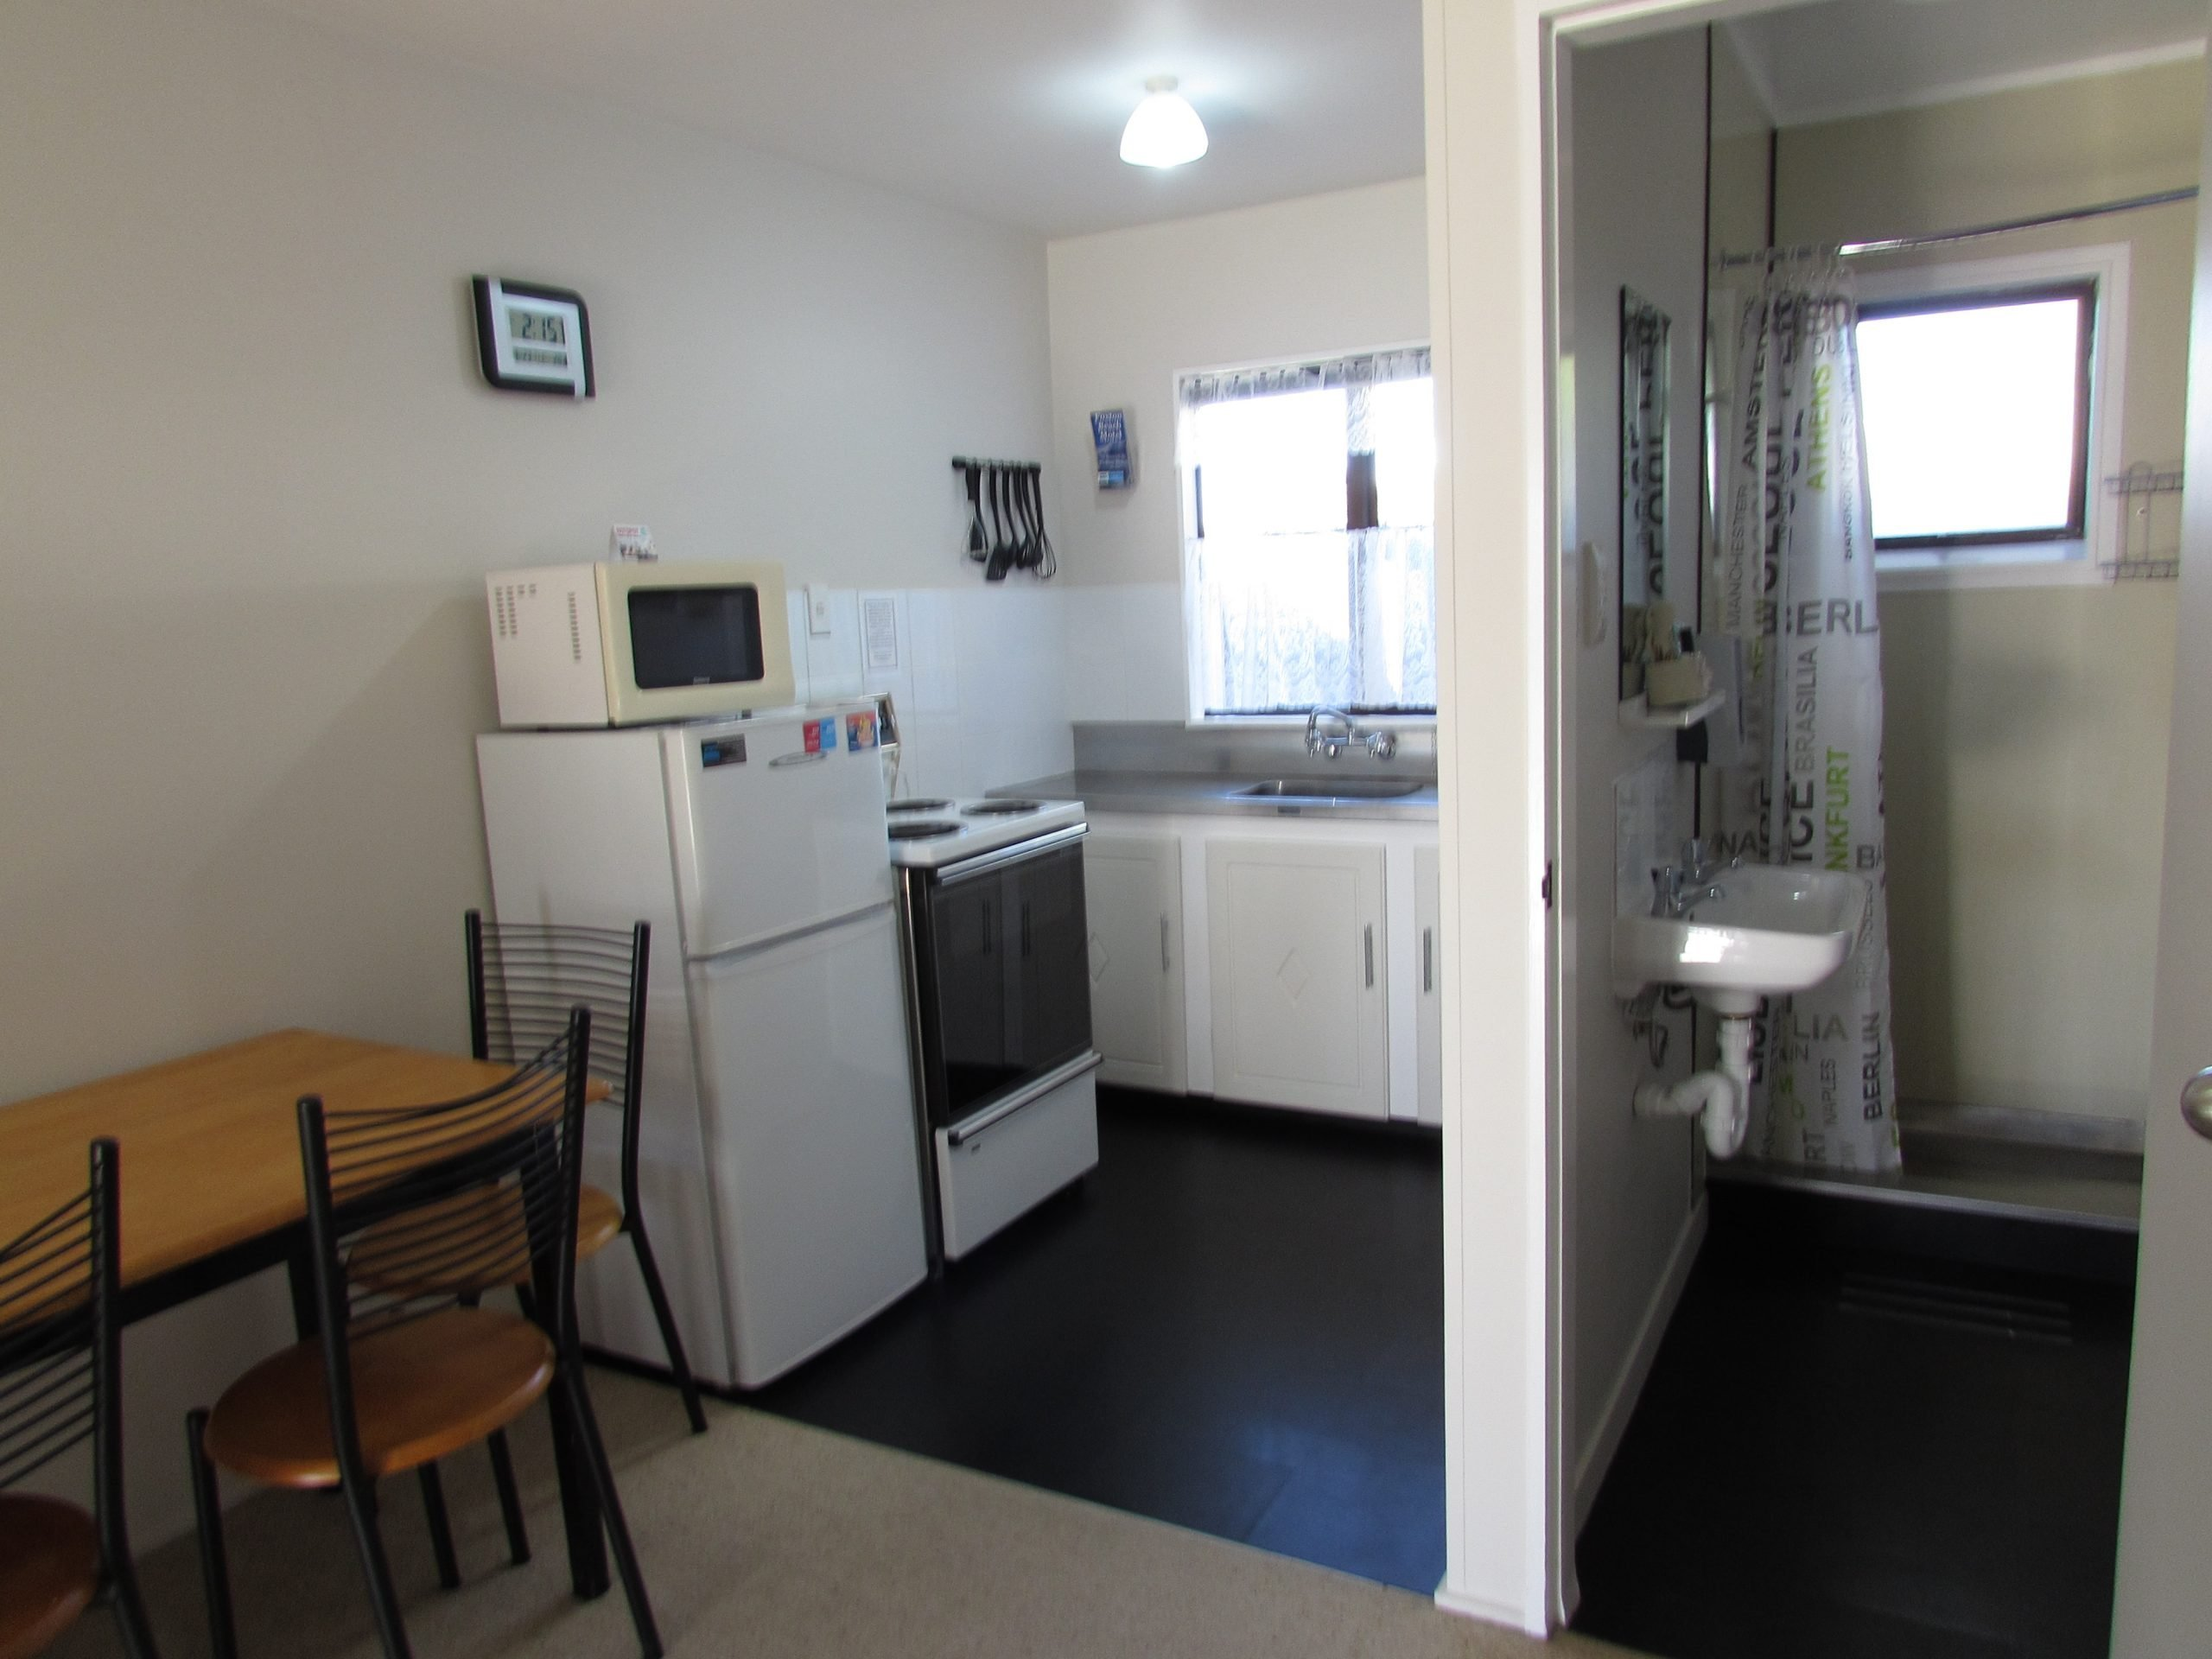 Unit 5- Kitchen & bathroom